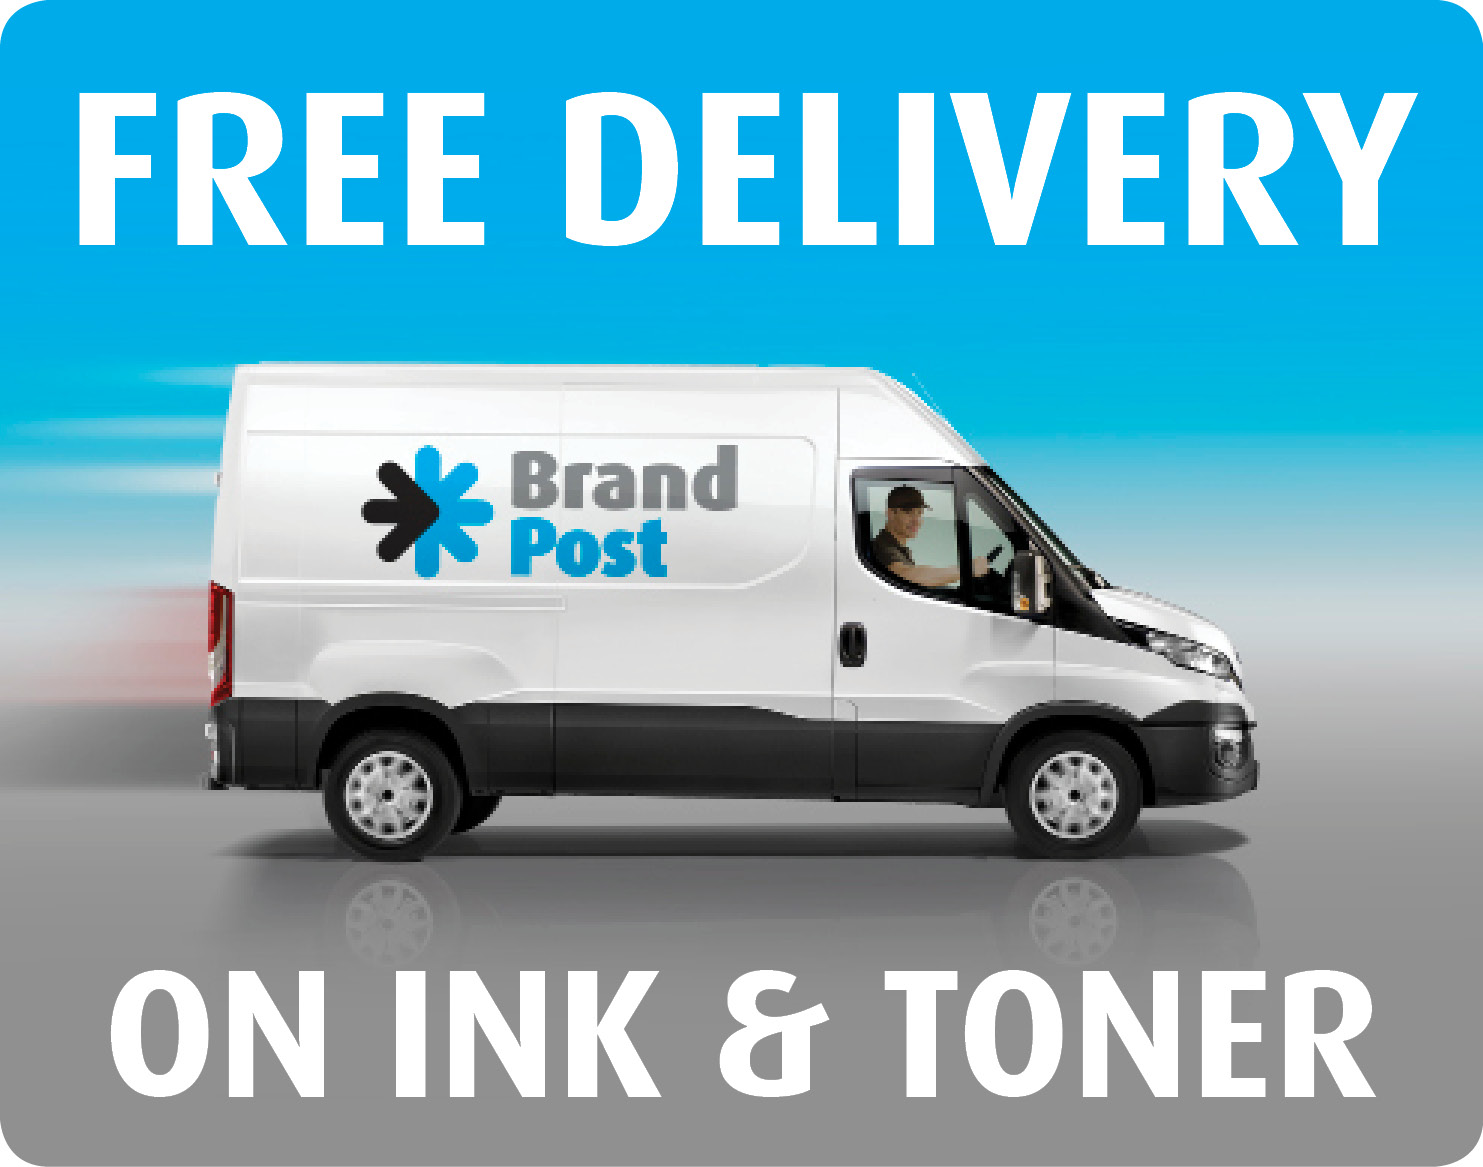 Free delivery on Ink and Toner